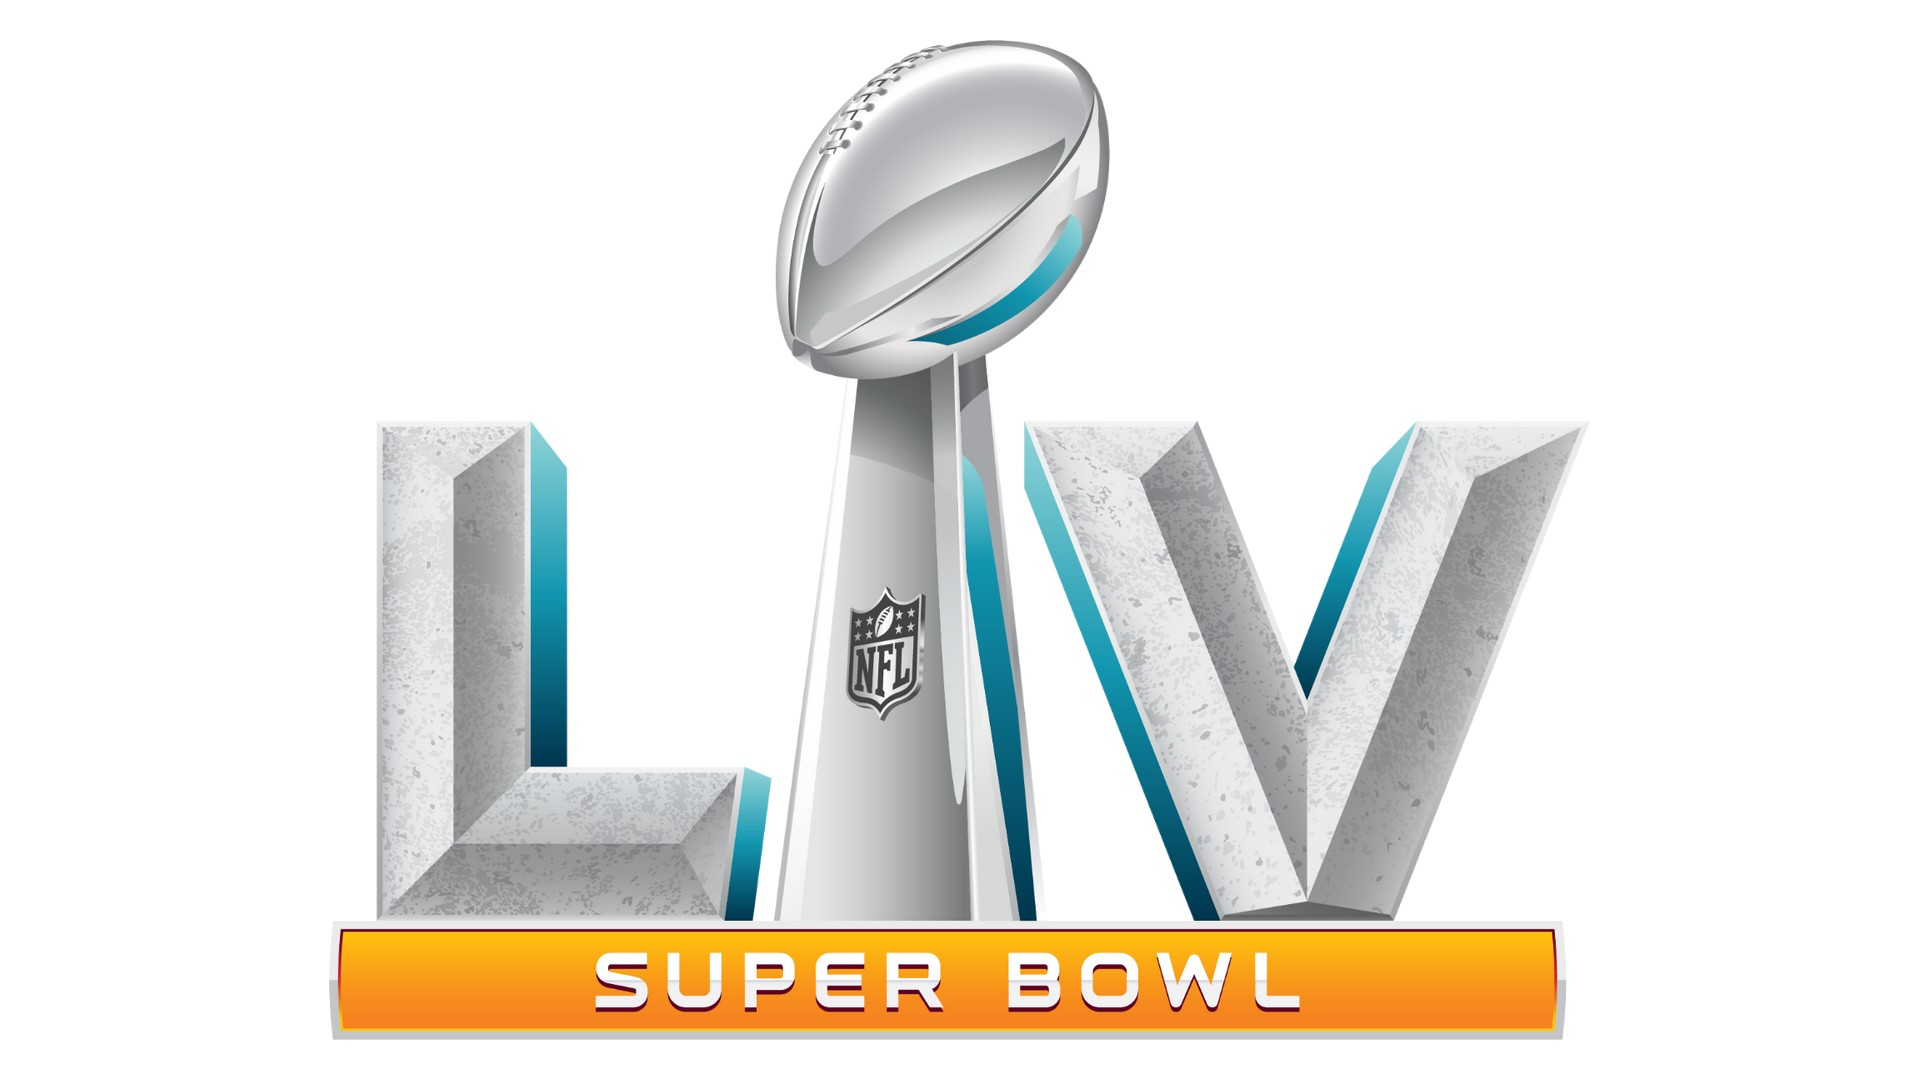 Foot US – Superbowl LV 2021 (2) logo